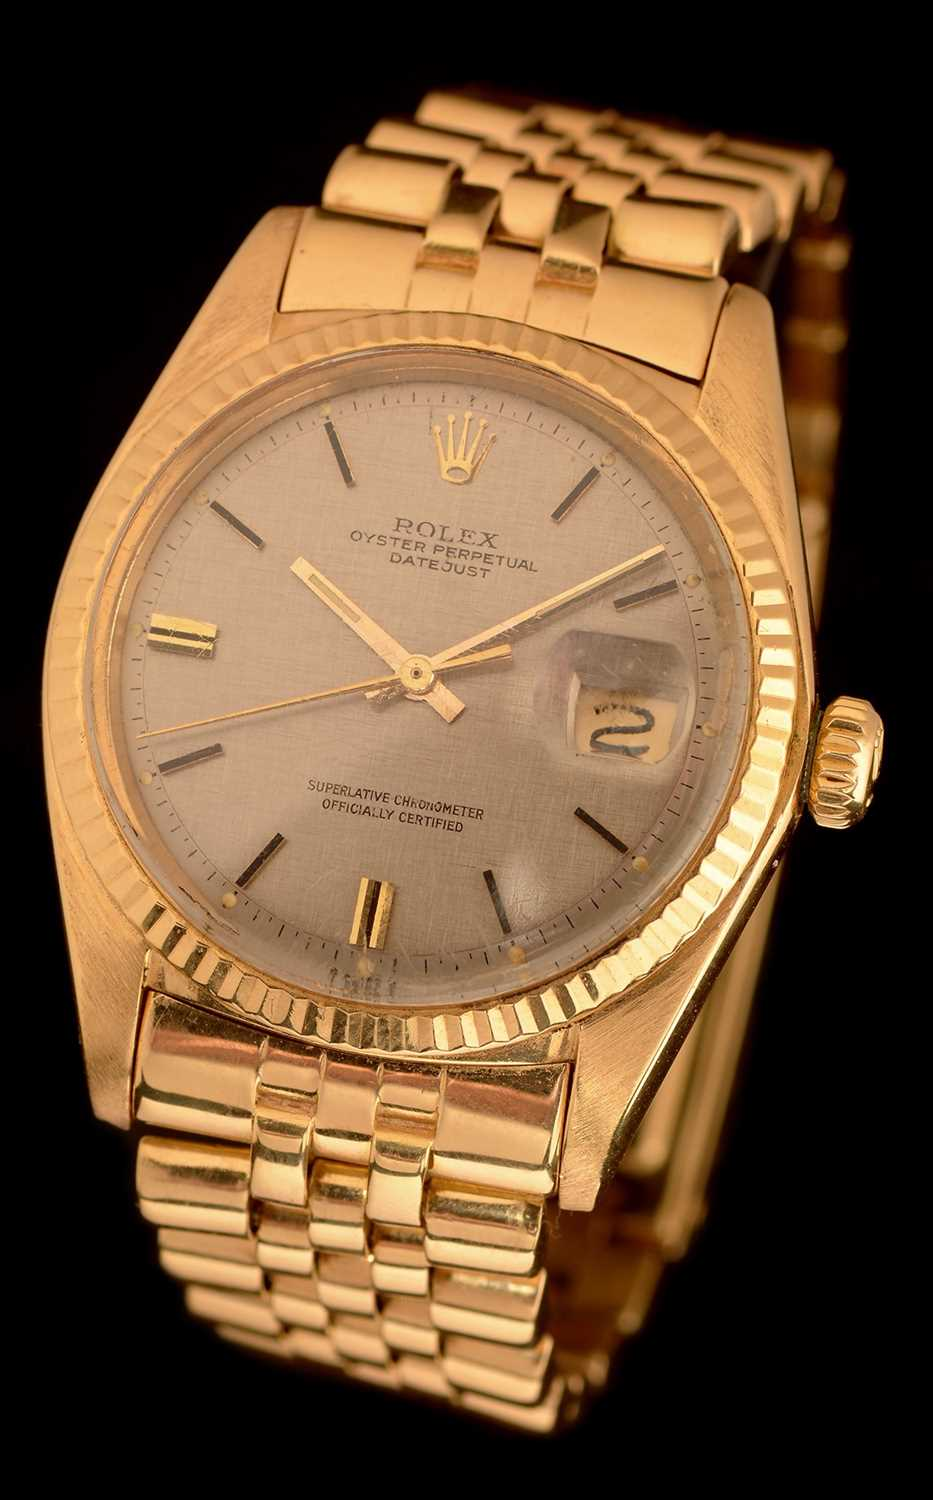 32 - Rolex Datejust: 18ct yellow gold datejust